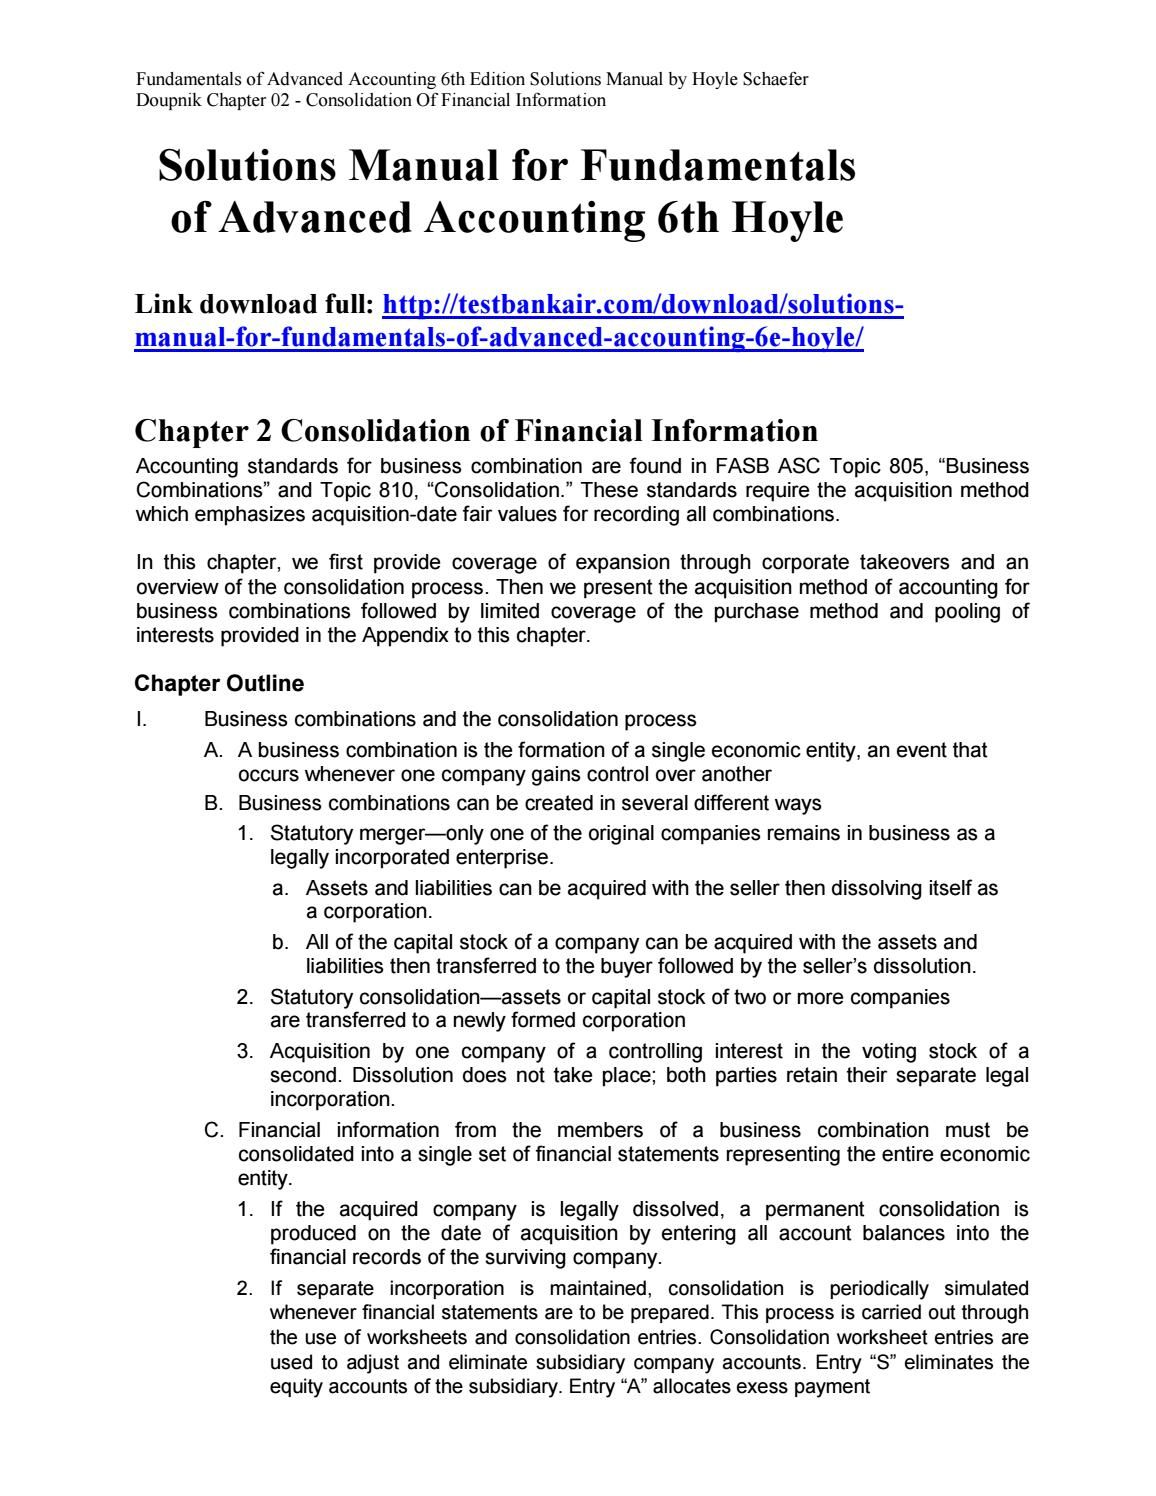 Solutions Manual for Fundamentals of Advanced Accounting 6th Hoyle | solutions  manual | Pinterest